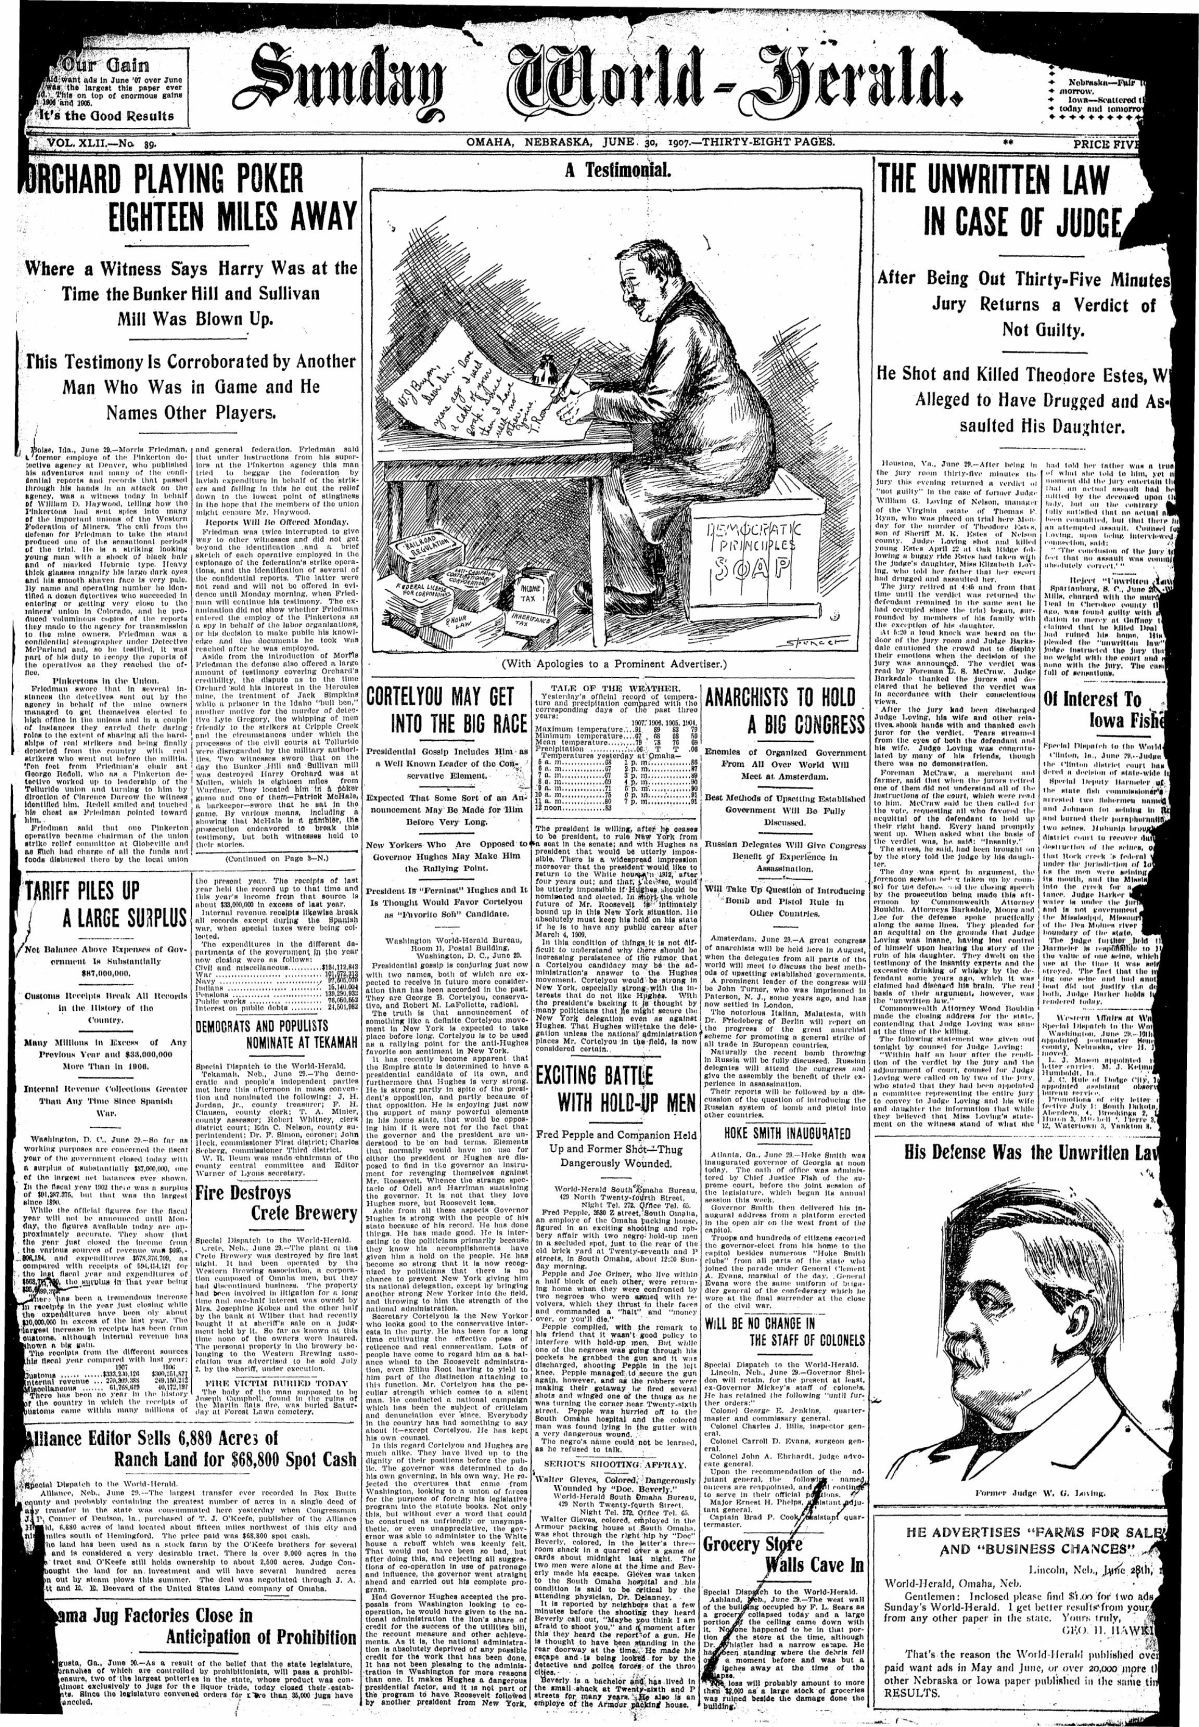 June 30, 1907, cover of The World-Herald